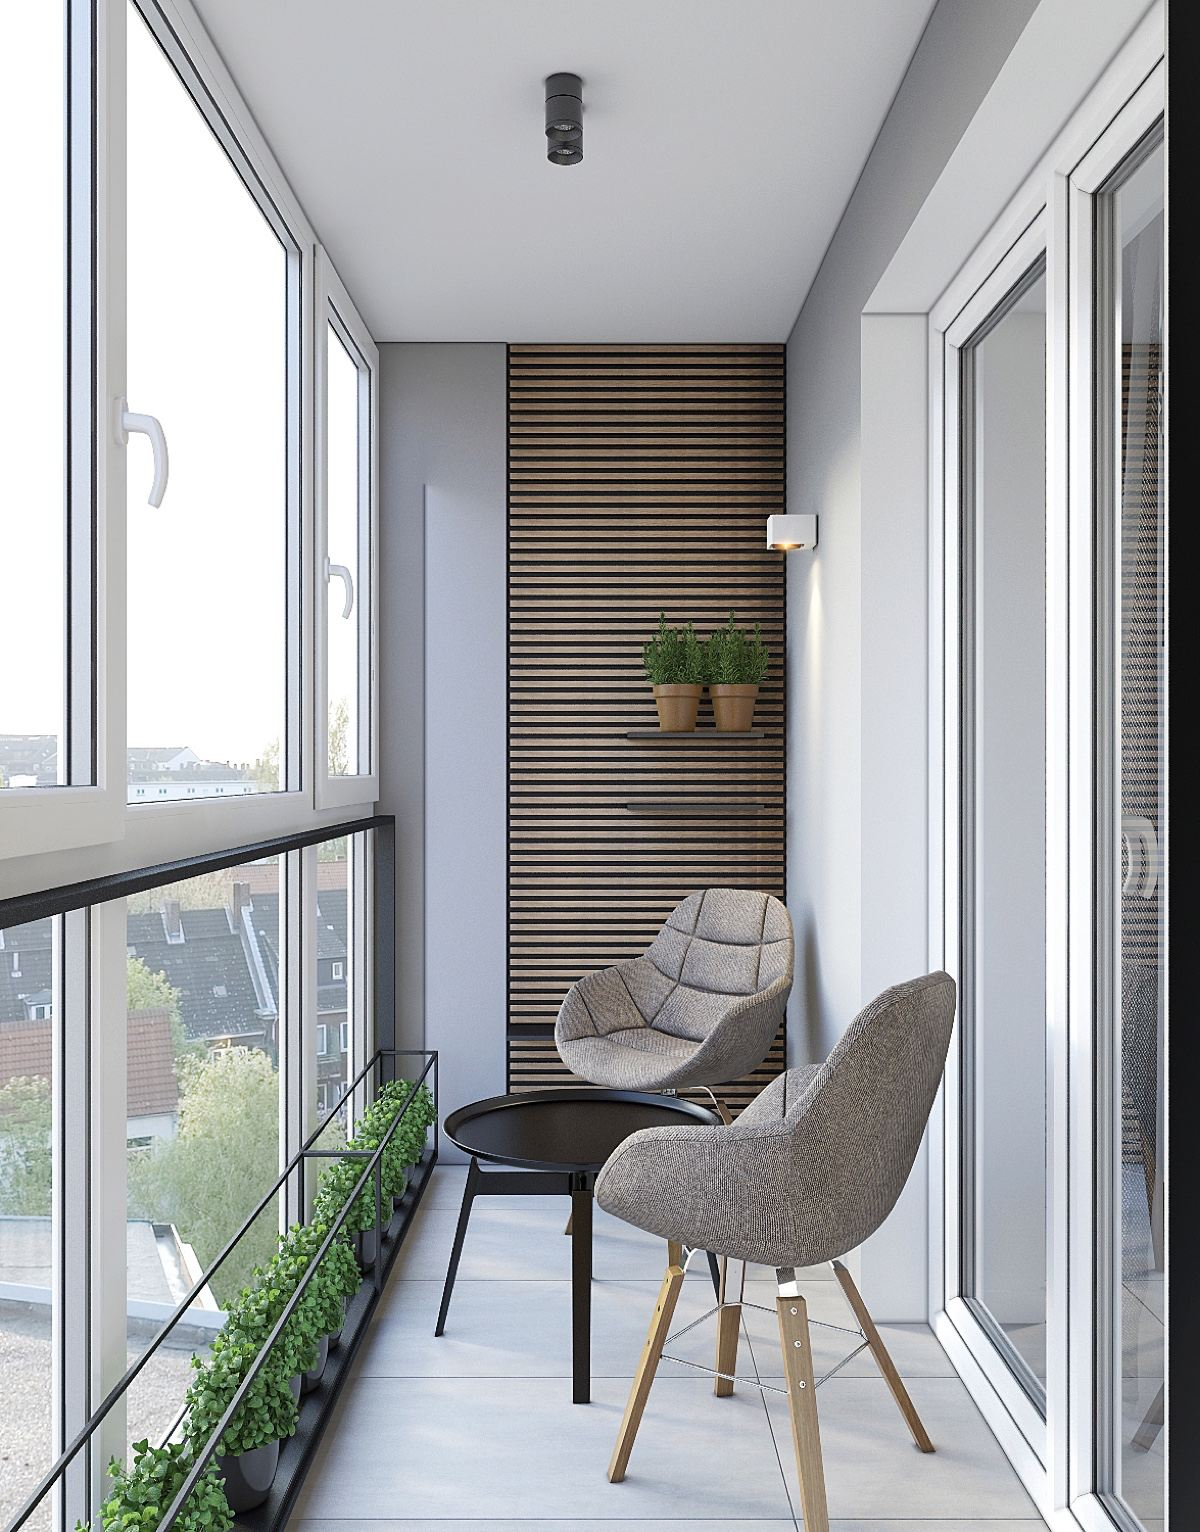 Spacious Balcony Ideas Two Mushroom Linen Chairs - Spacious looking one bedroom apartment with dark wood accents